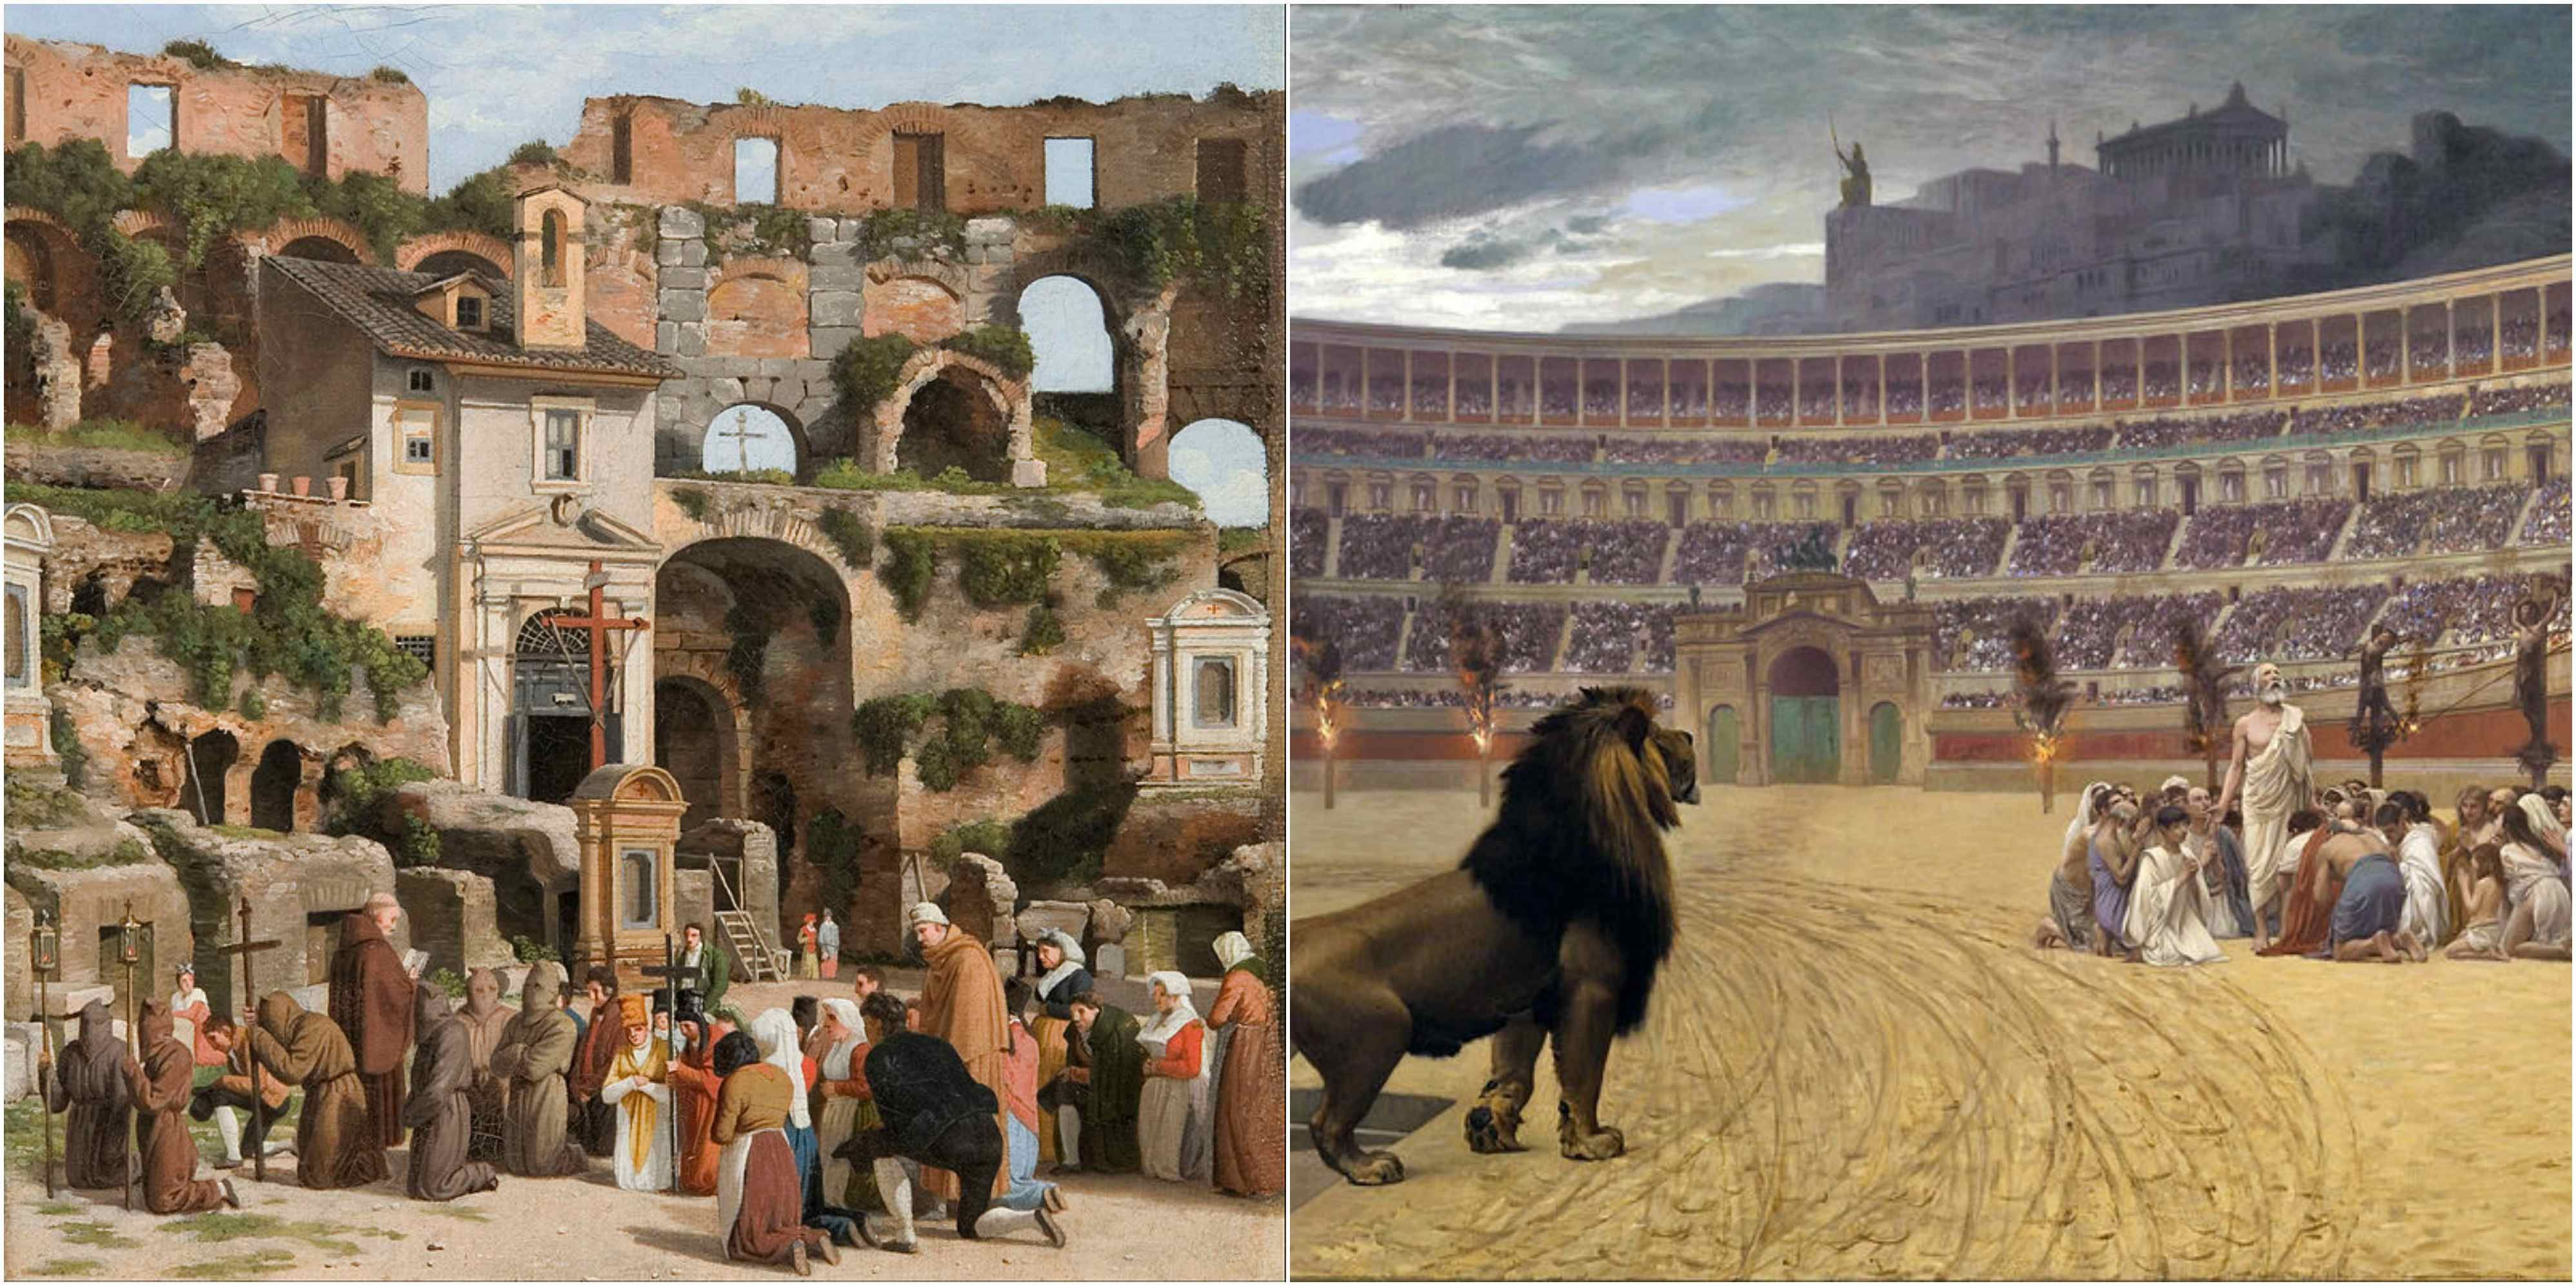 The Colosseum is the world\'s largest amphitheater and one of the ...